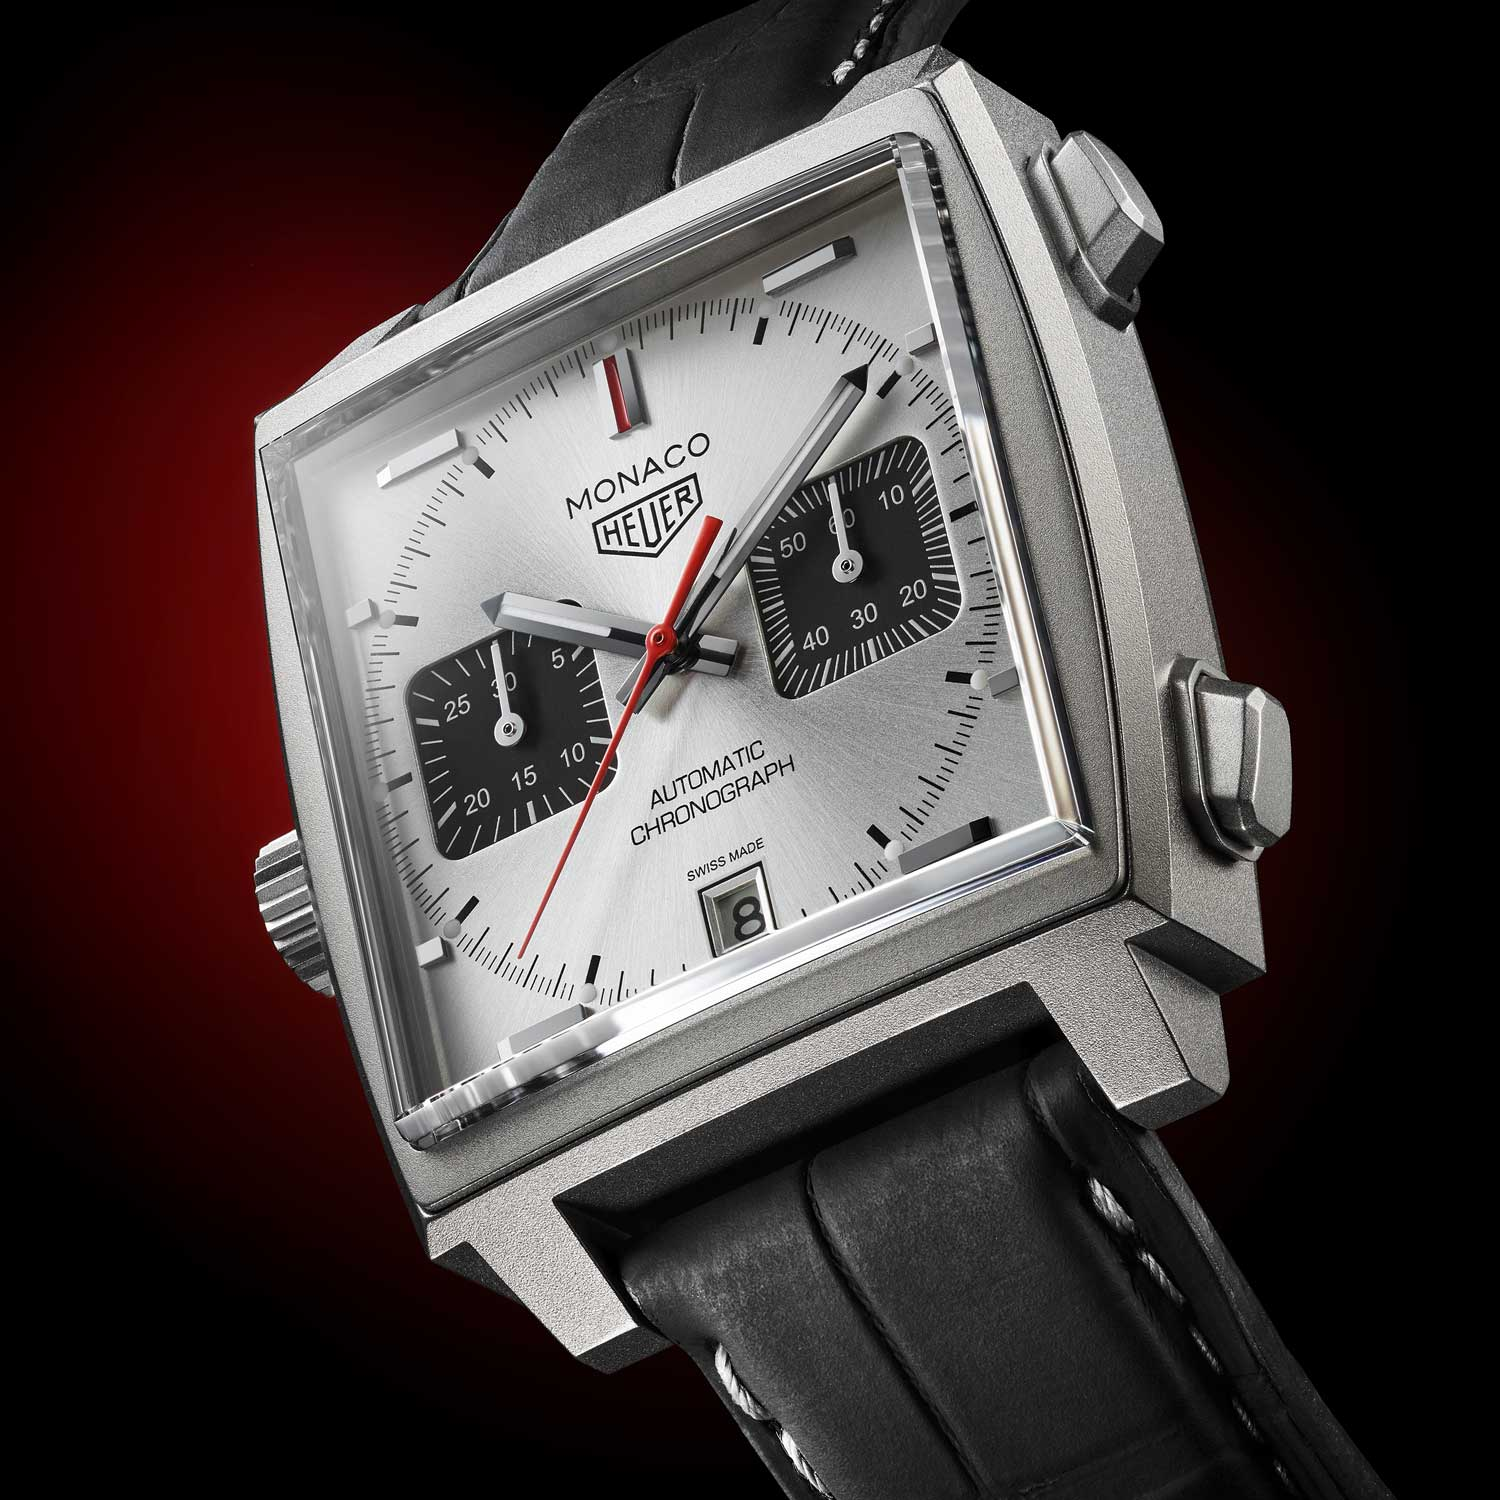 Made from Grade 2 titanium, the TAG Heuer Monaco Titan Special Edition is lightweight and strong